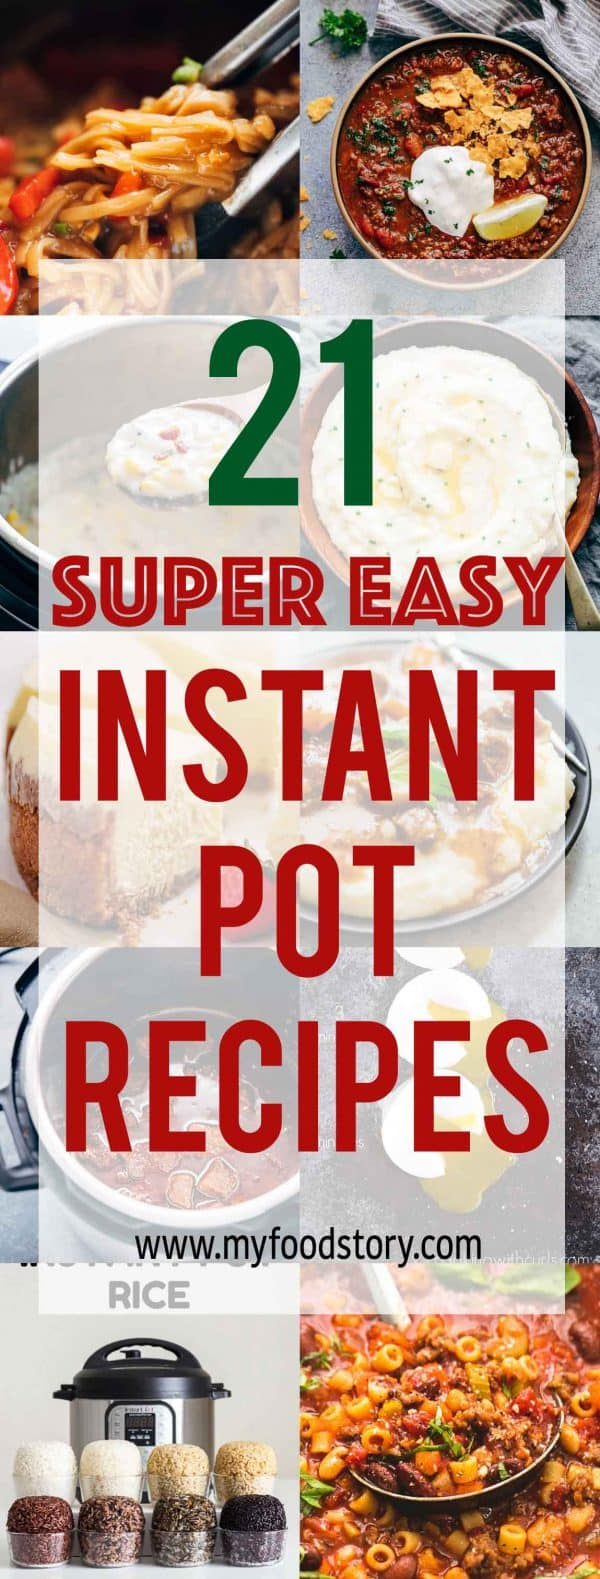 This collection of 21 Instant Pot Recipes for every Mealtime range from beginner to intermediate so if you are still wondering what to do with your new Instant Pot - here's your answer!